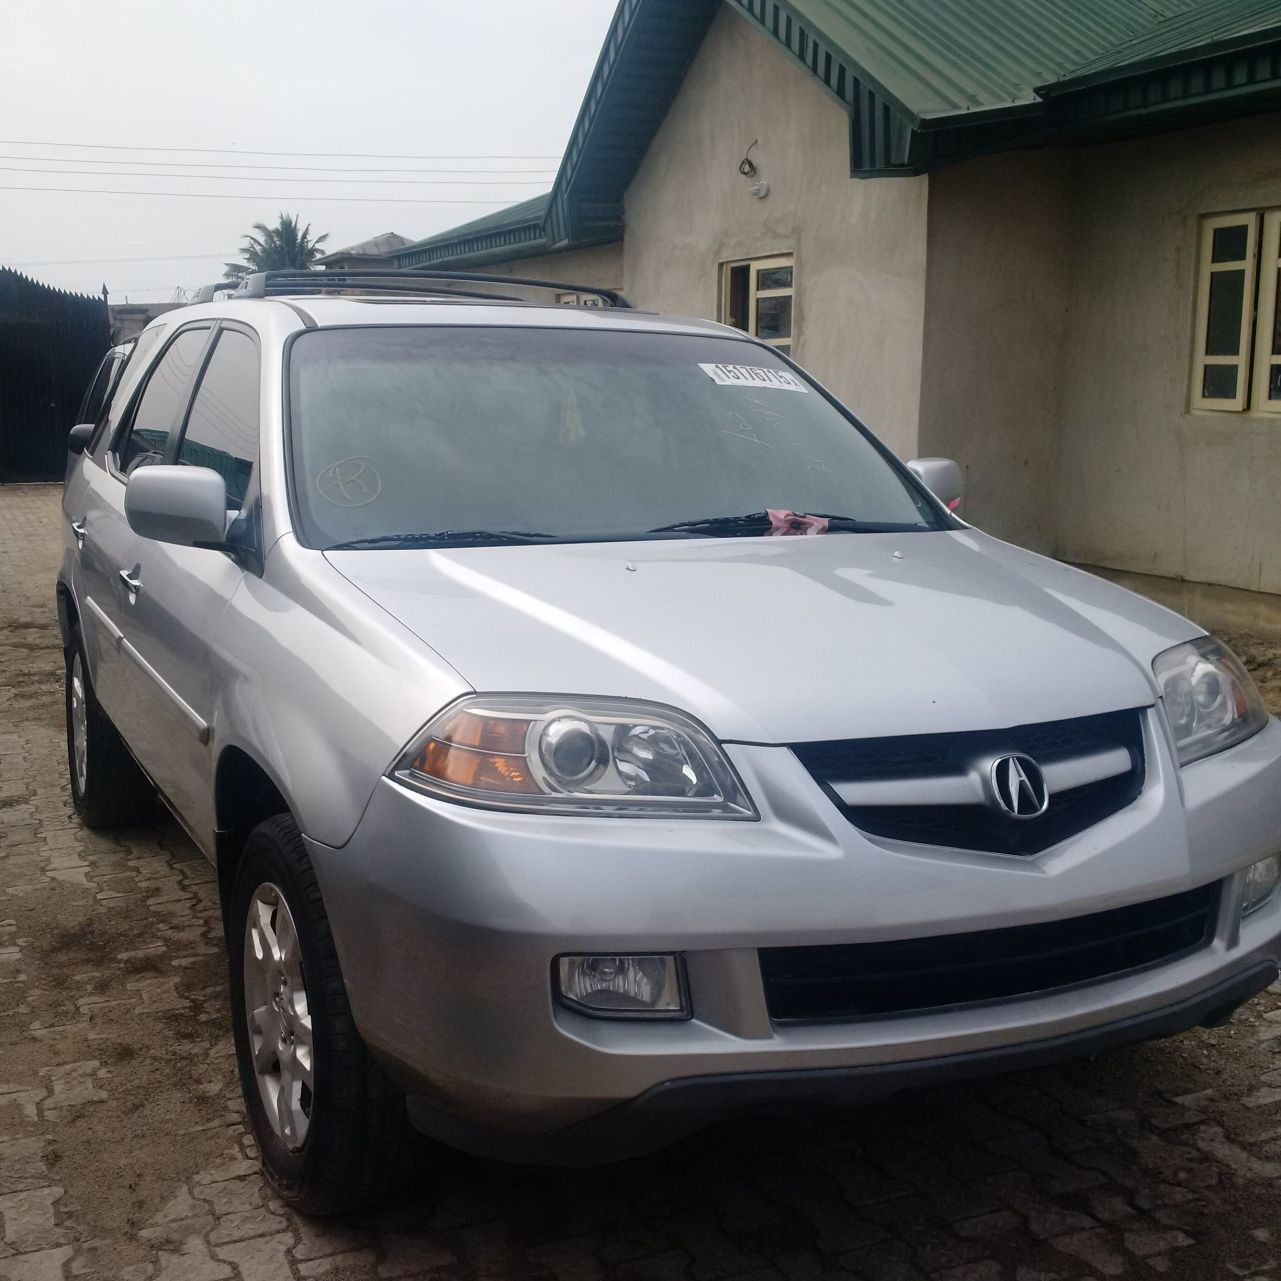 Lagos Cleared Acura Mdx 2006 For Sale @ #2,050,000